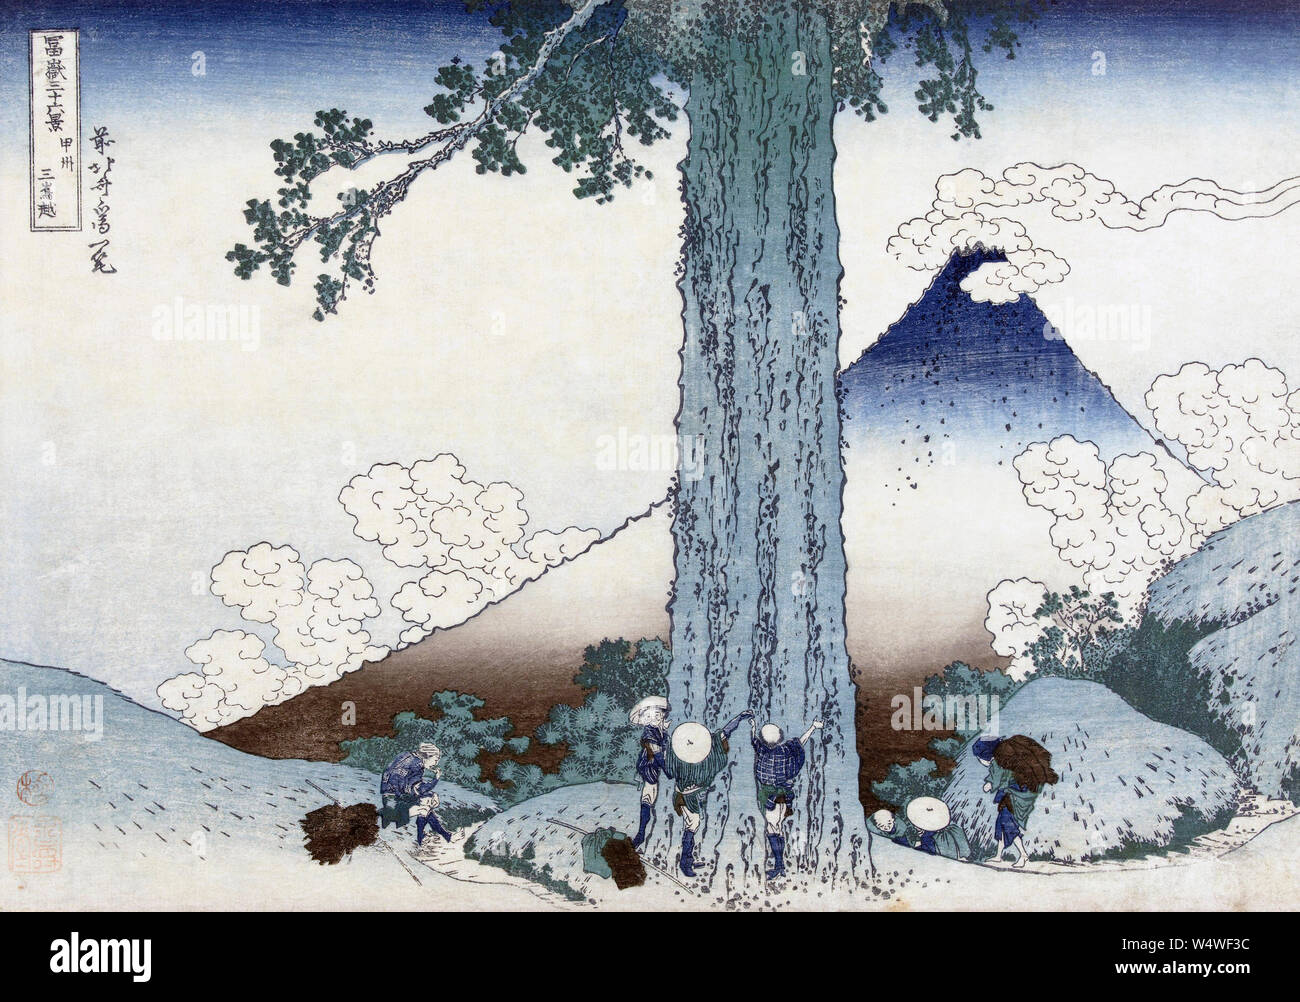 Mishima mountain pass in Kai province,  Japan, showing Mt Fuji.  After a woodblock print dating from circa 1830 by Japanese artist Katsushika Hokusai, 1760 - 1849.  The woodblock is part of a series known as Thirty-six Views of Mount Fuji. Stock Photo